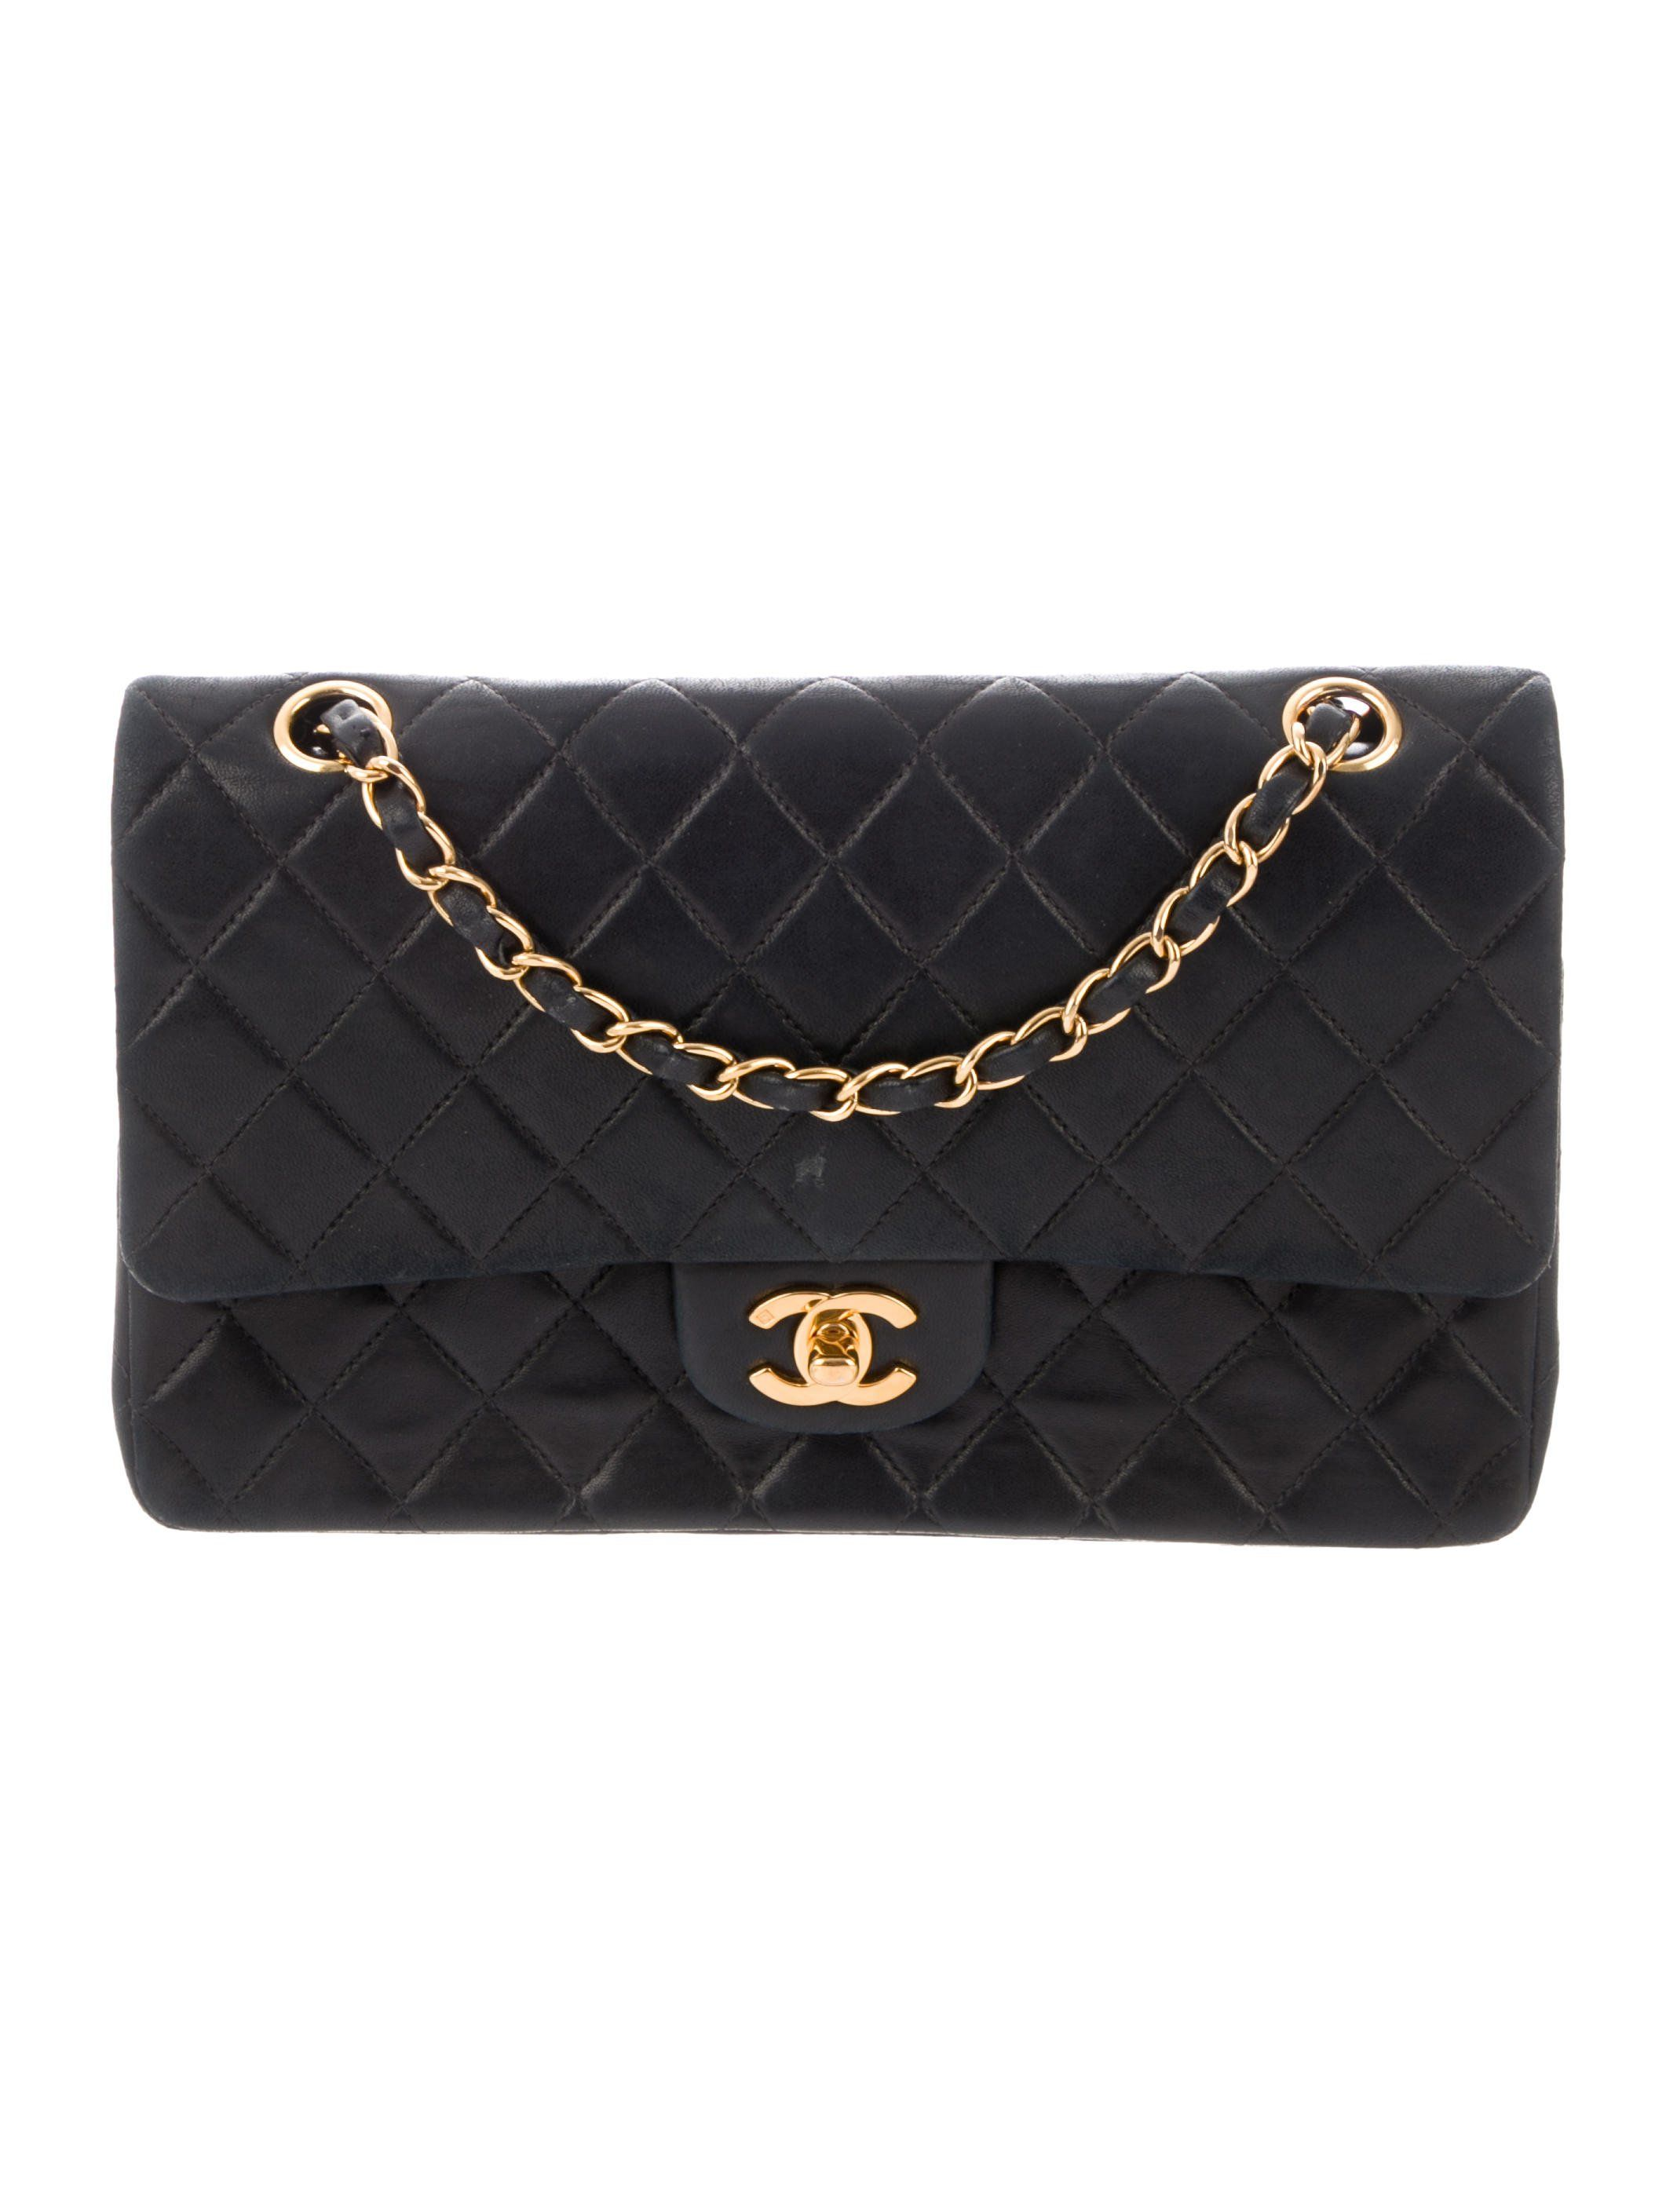 47eeaa0a2f5d Black quilted lambskin Chanel Medium Double Flap bag with gold-tone hardware,  convertible chain